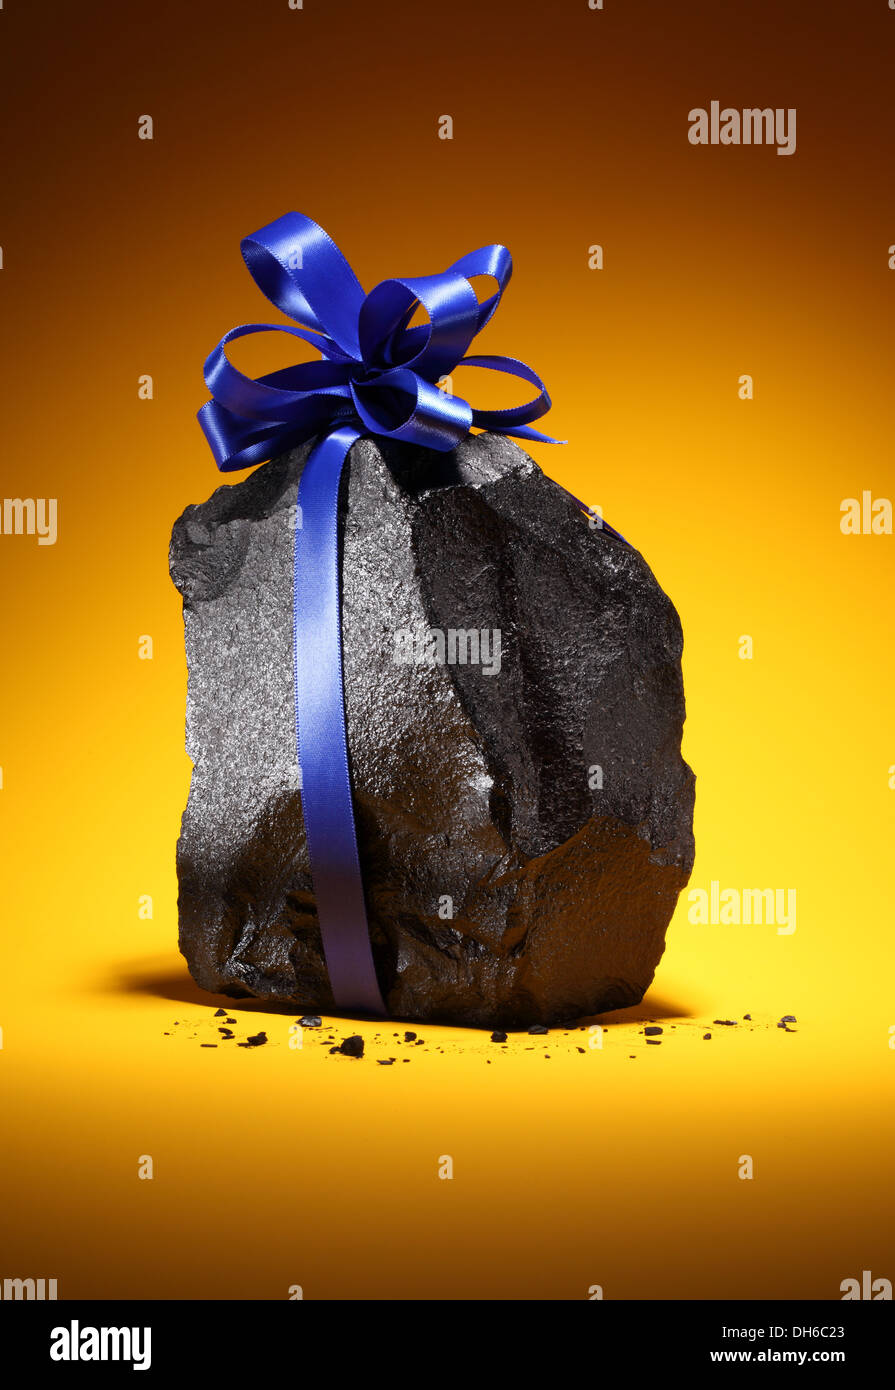 A black black chunk of coal with a blue ribbon tied around it. Bright orange background. - Stock Image